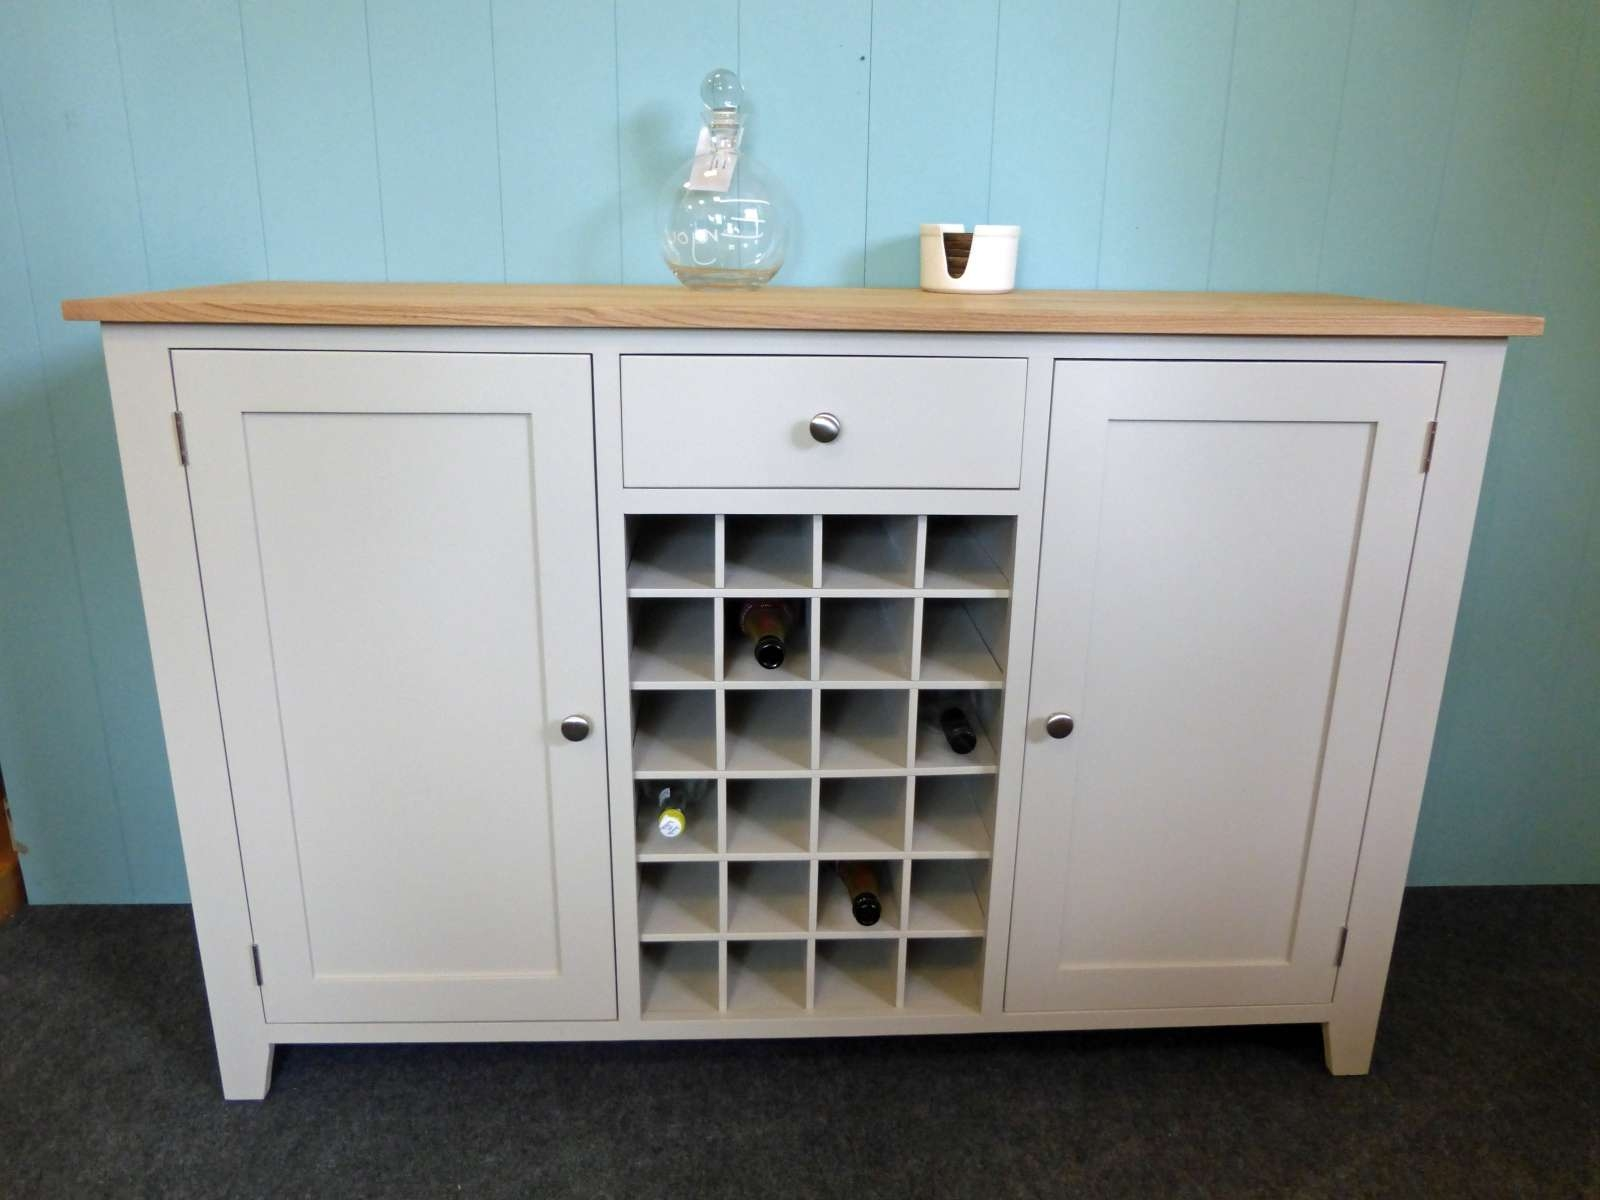 Painted Shaker Style Sideboard With Wine Rack – Solid Wood For Sideboards With Wine Rack (View 15 of 20)